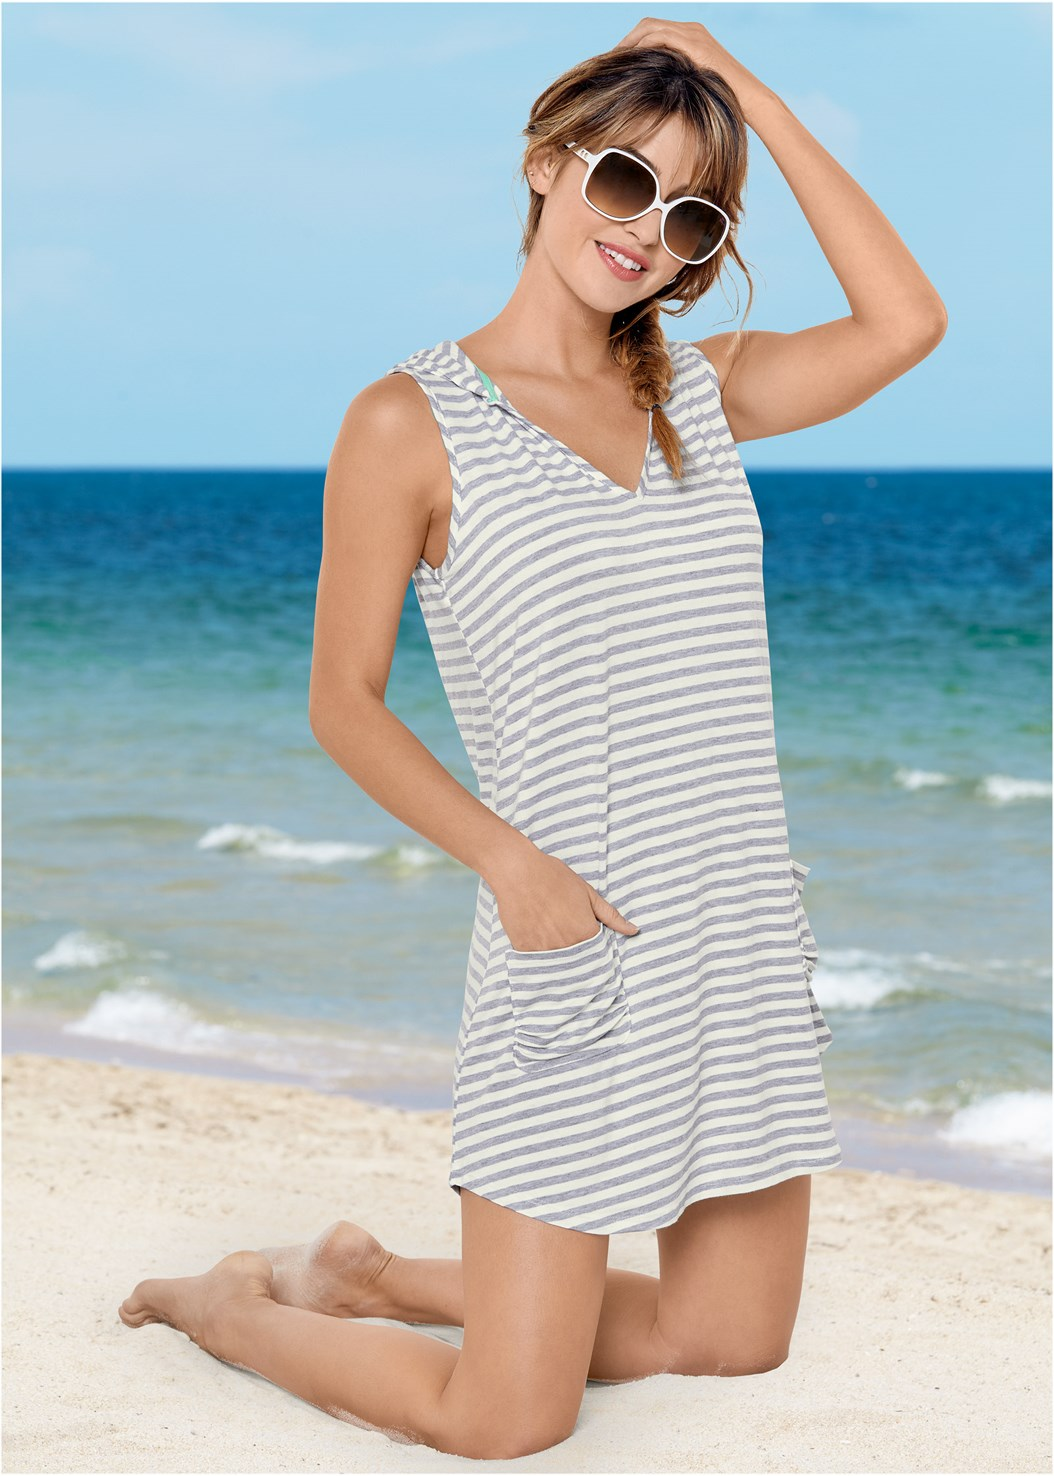 Hooded Pocket Cover-Up,Underwire Twist Tankini,Low Rise Classic Bikini Bottom ,Mid Rise Hipster Classic Bikini Bottom